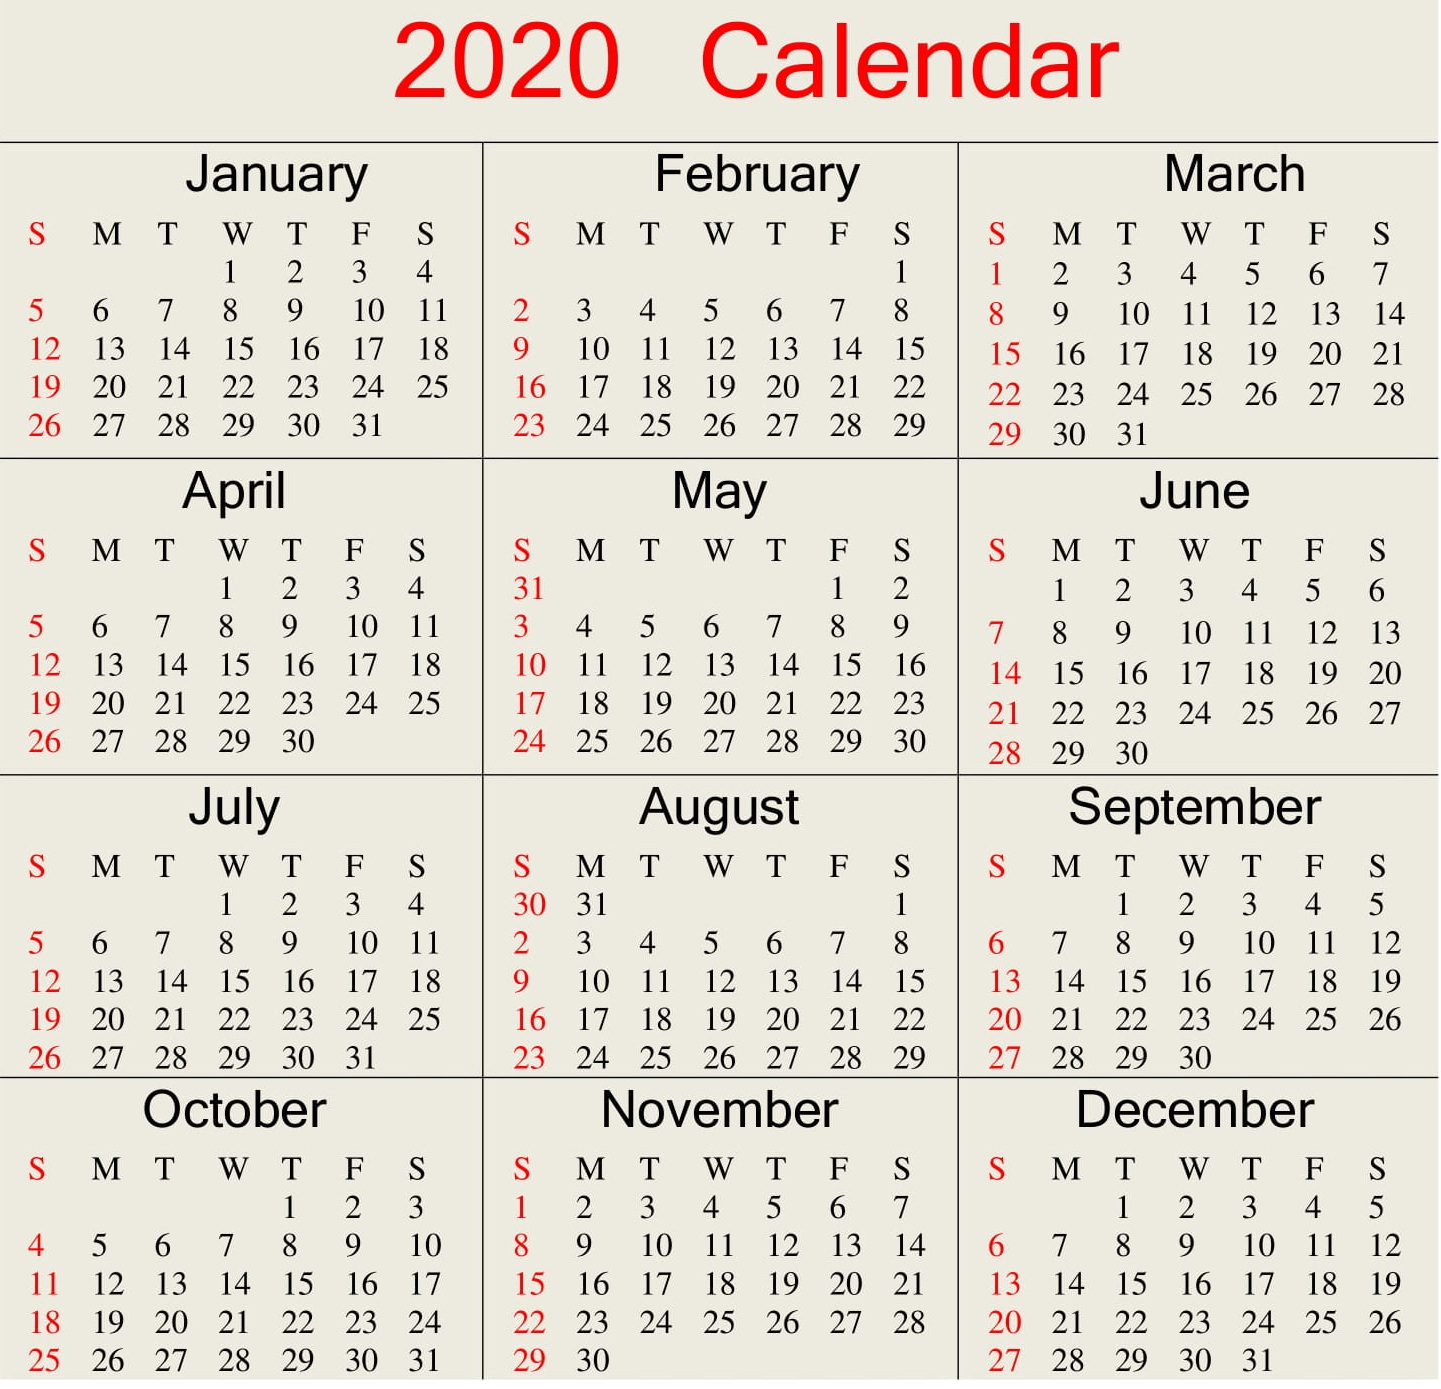 Julian Date Calendar 2020 In Excel | Free Printable Calendar throughout Julian Date The Years Only 2022